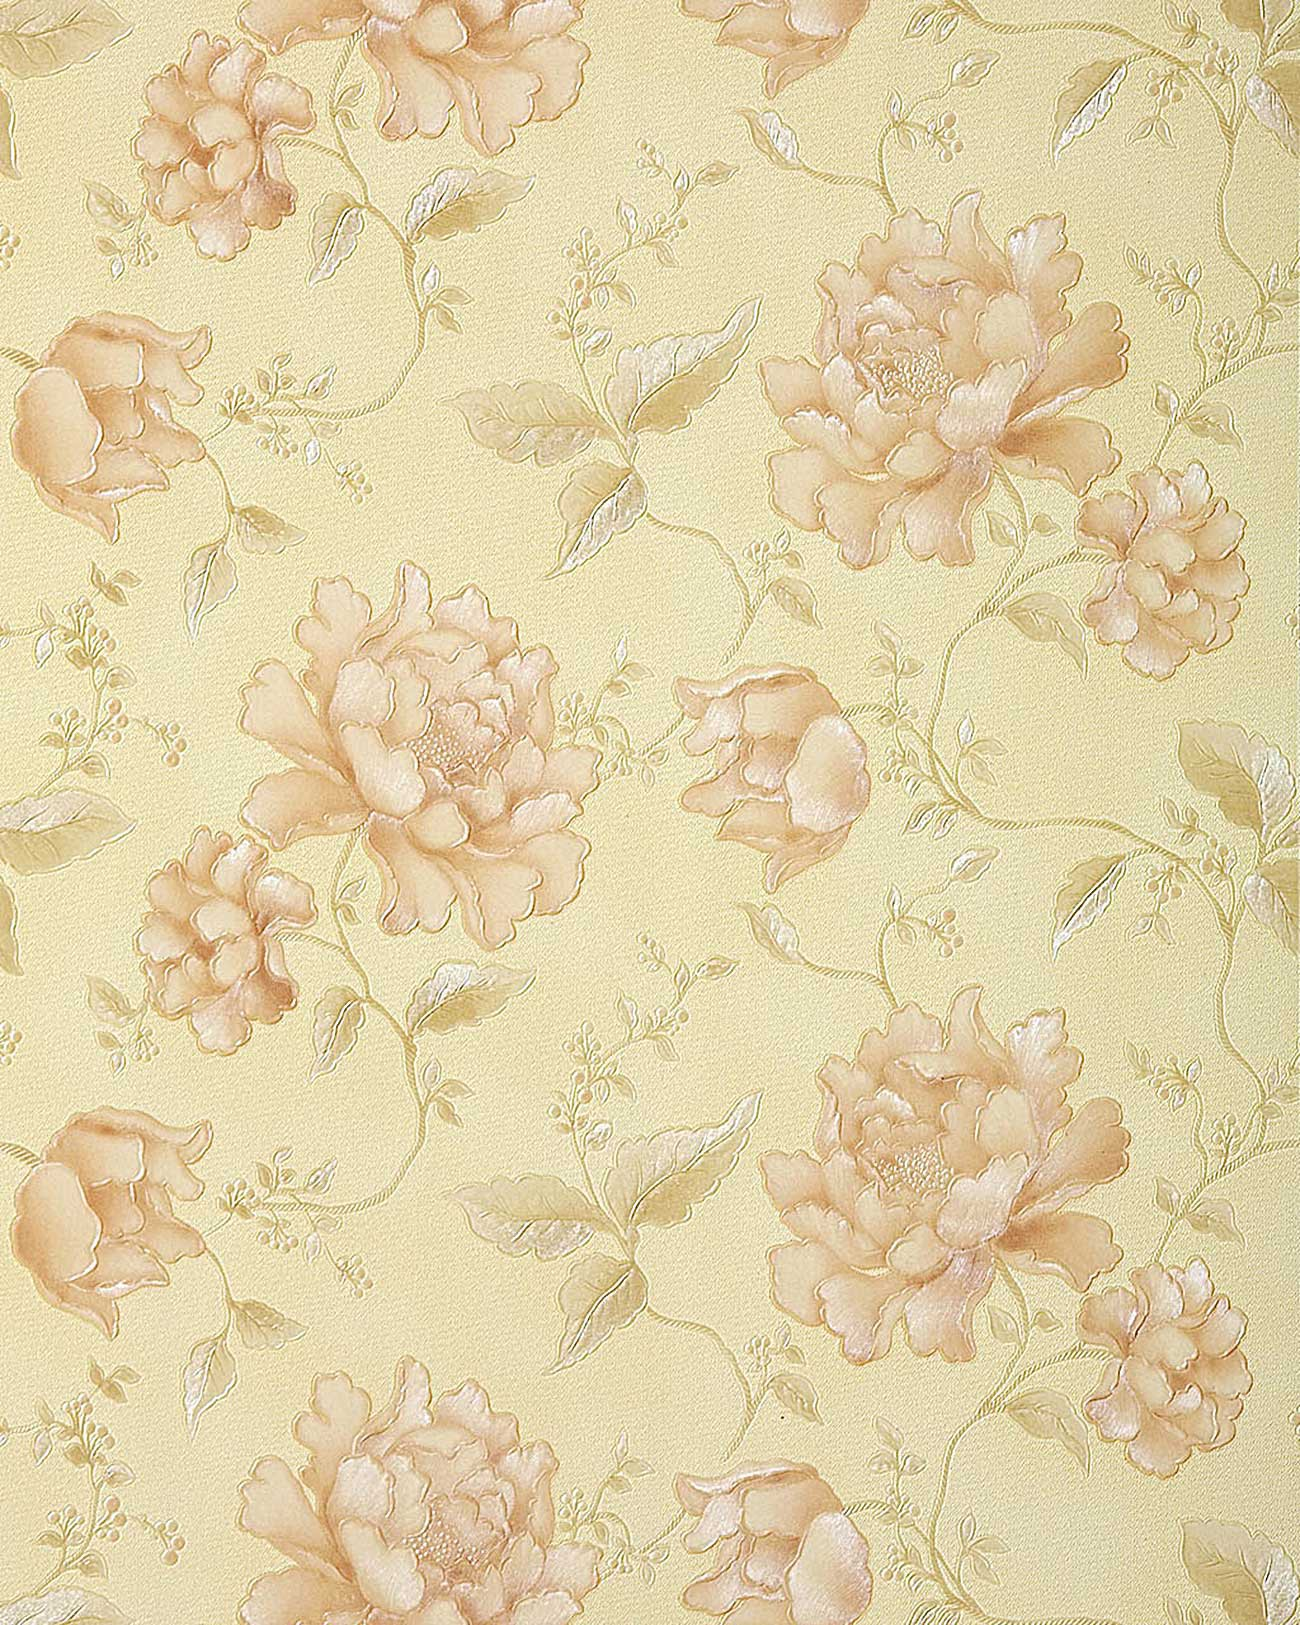 Papel pintado de flores edem 748 31 3d textura in relieve for Papel pintado gris y rosa